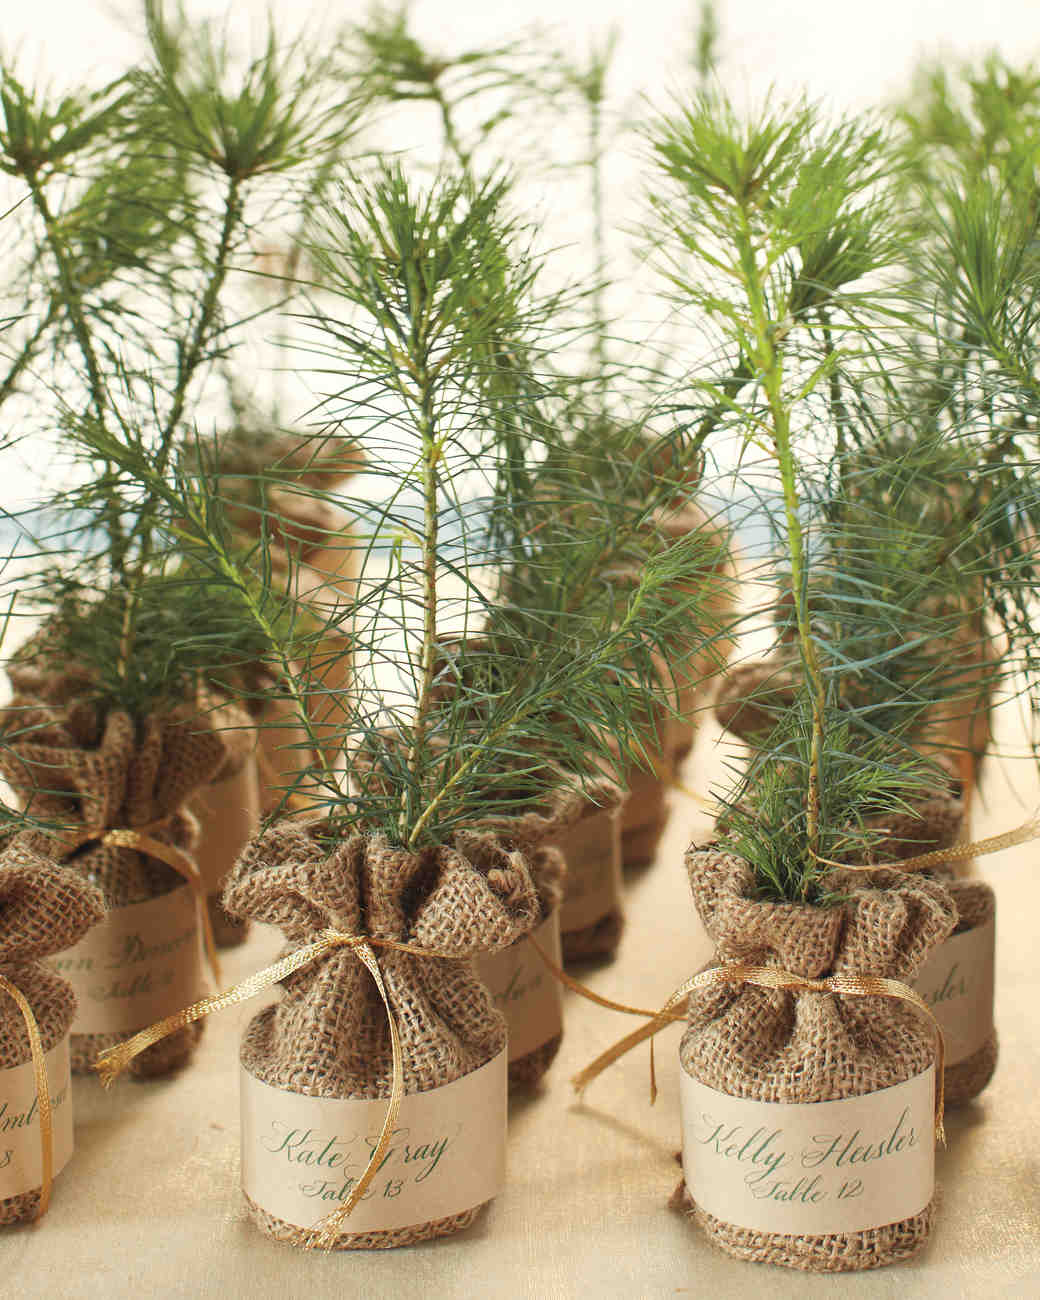 Saplings in Burlap Sacks